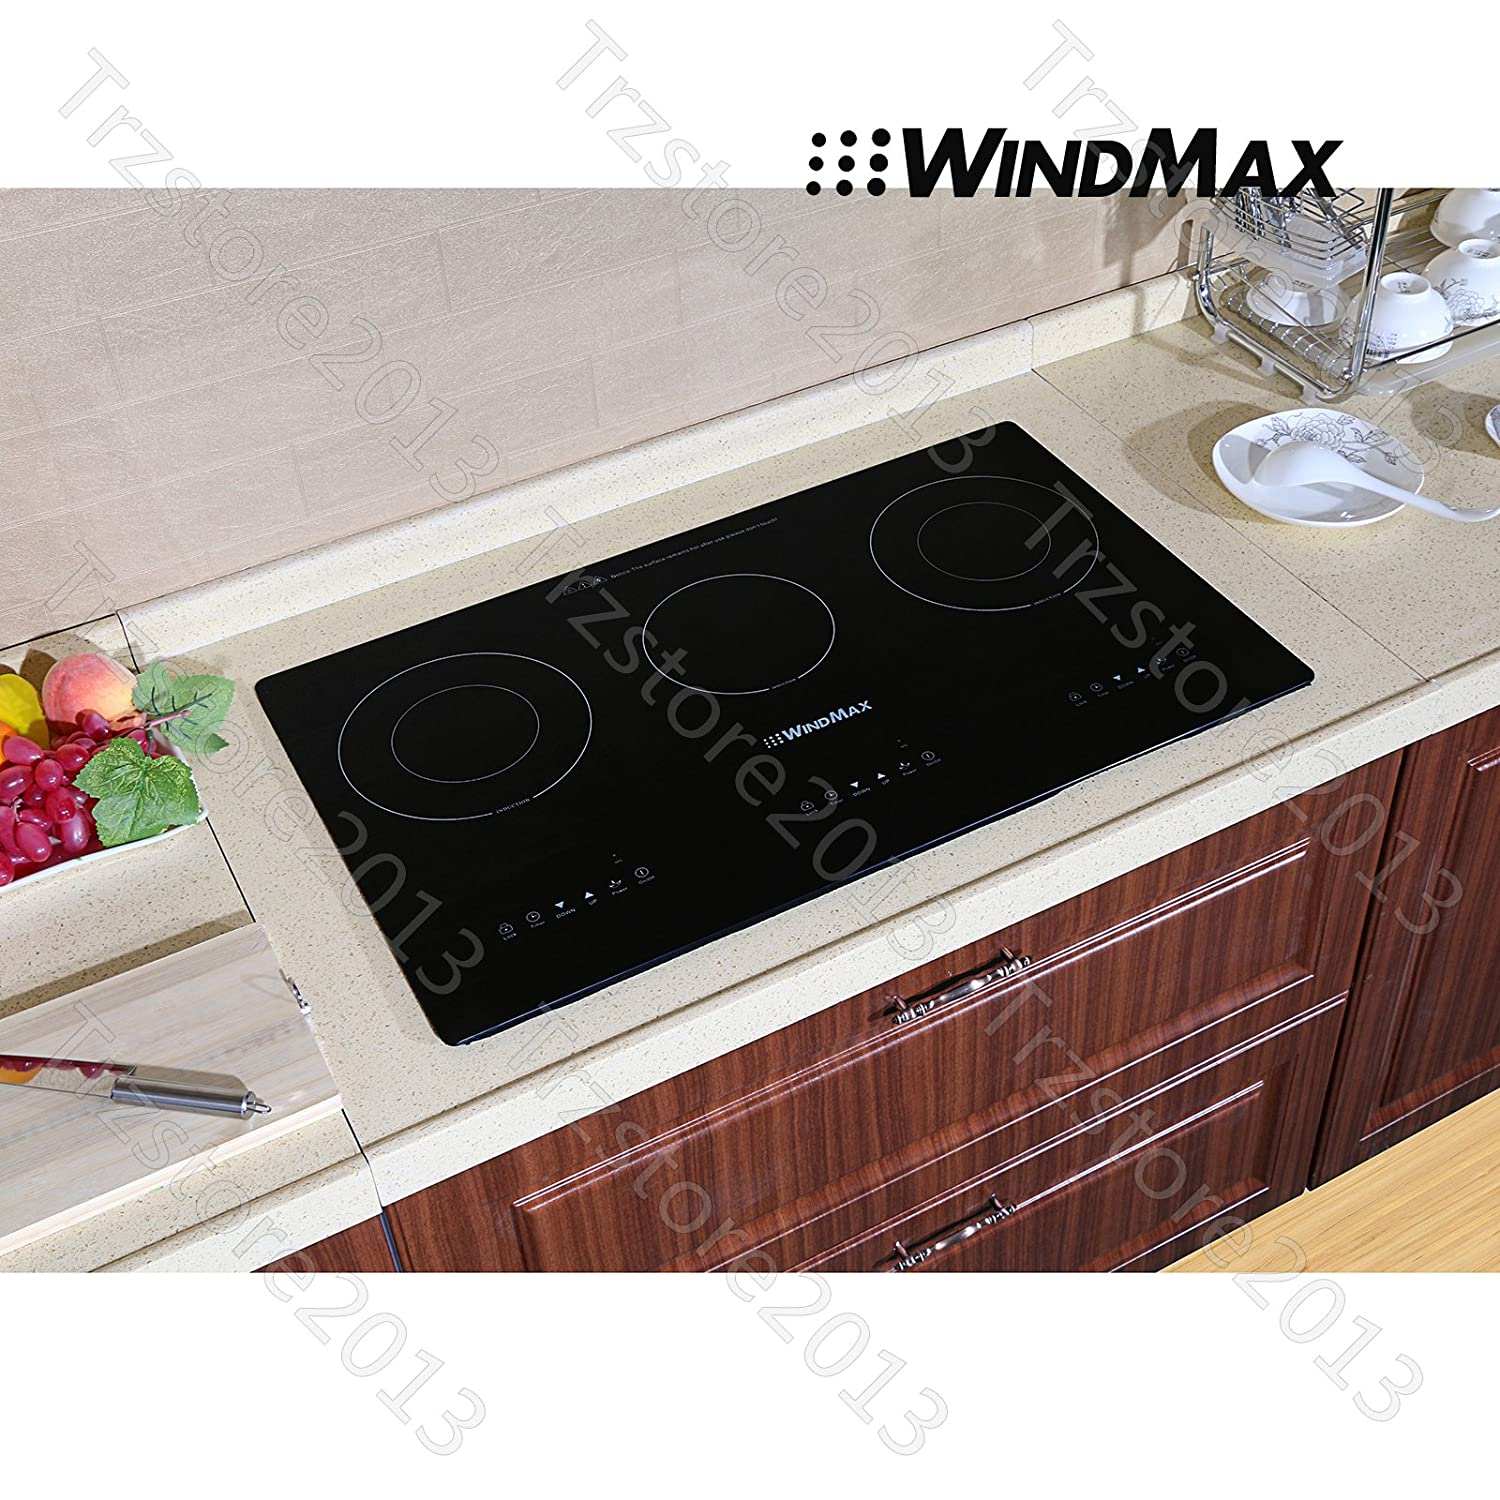 "WindMax® Hot 29.5"" Glass Plate Induction Hob 3 Burner Triple Stove Built-in Cooktops 240V"